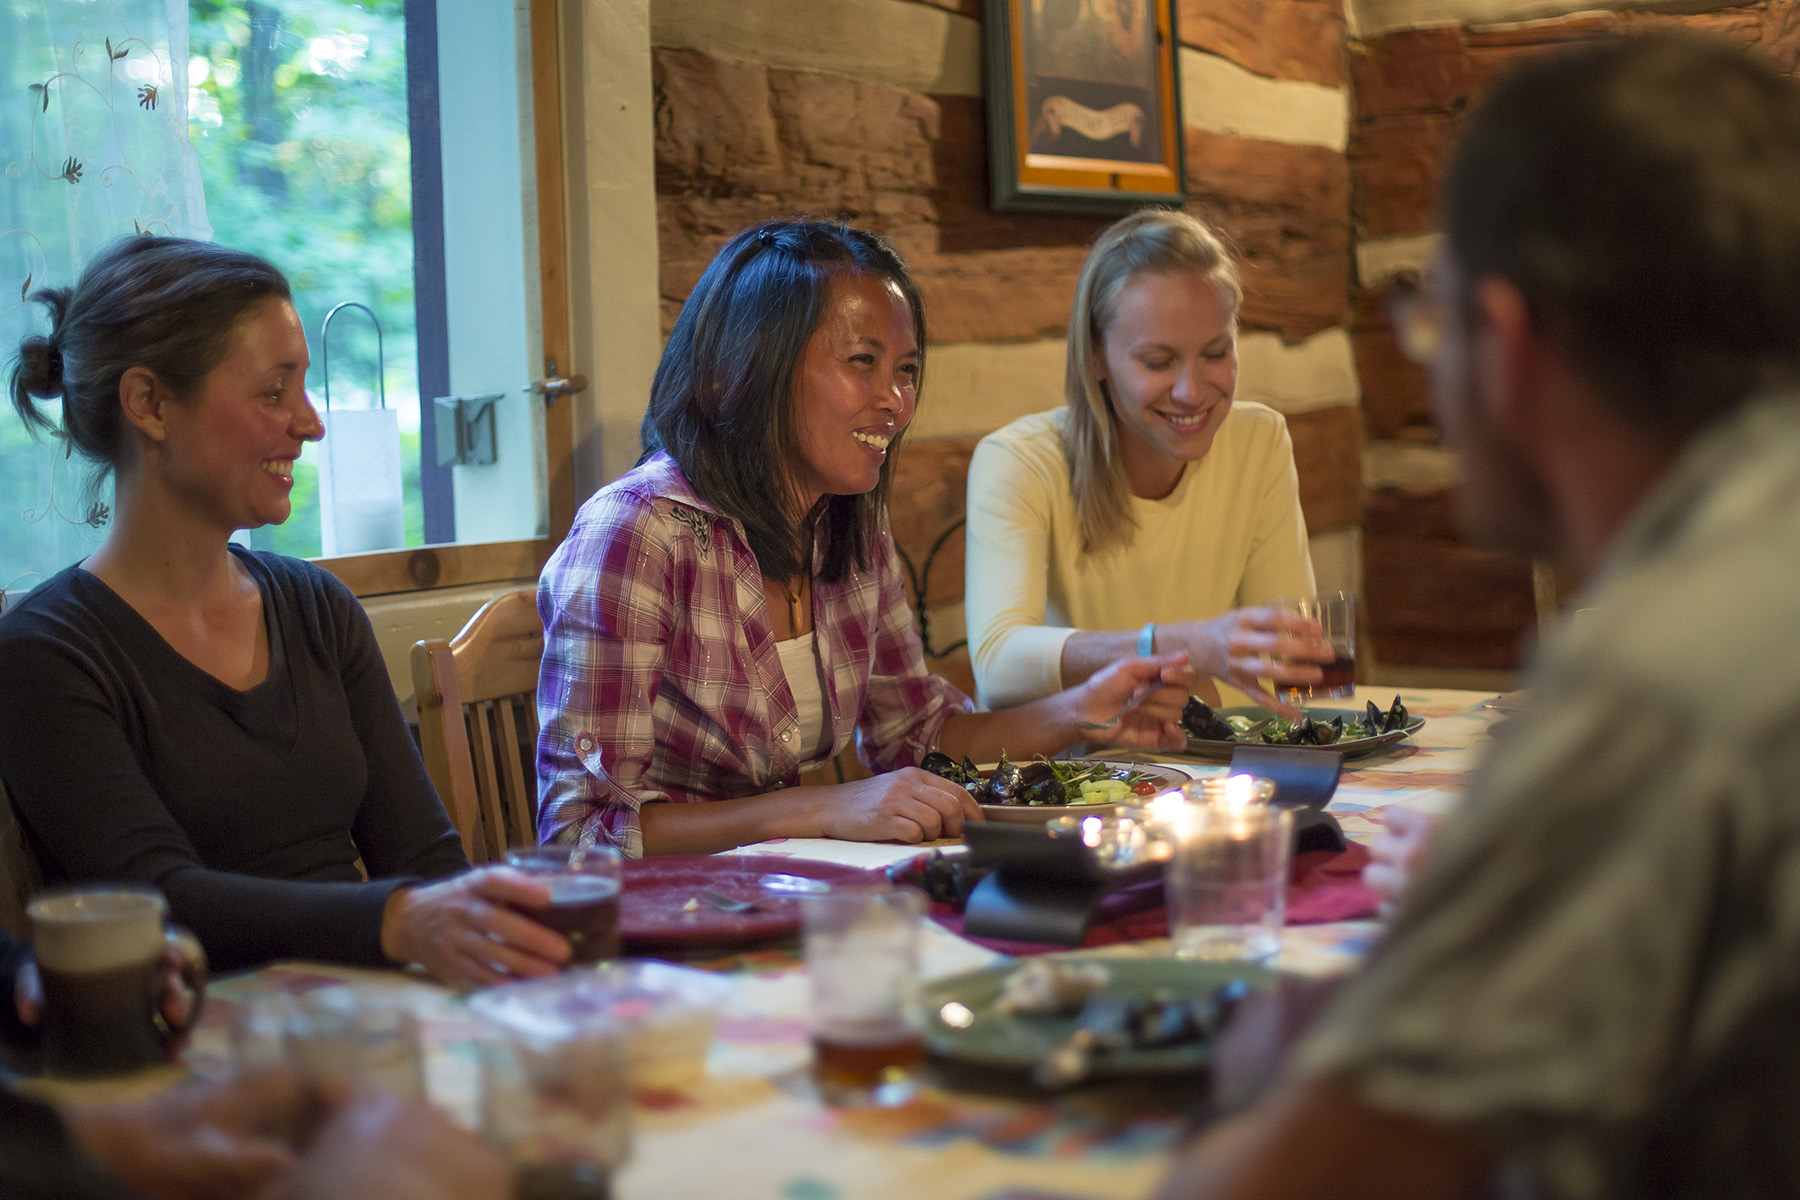 Three women sharing a meal in a rustic log cabin